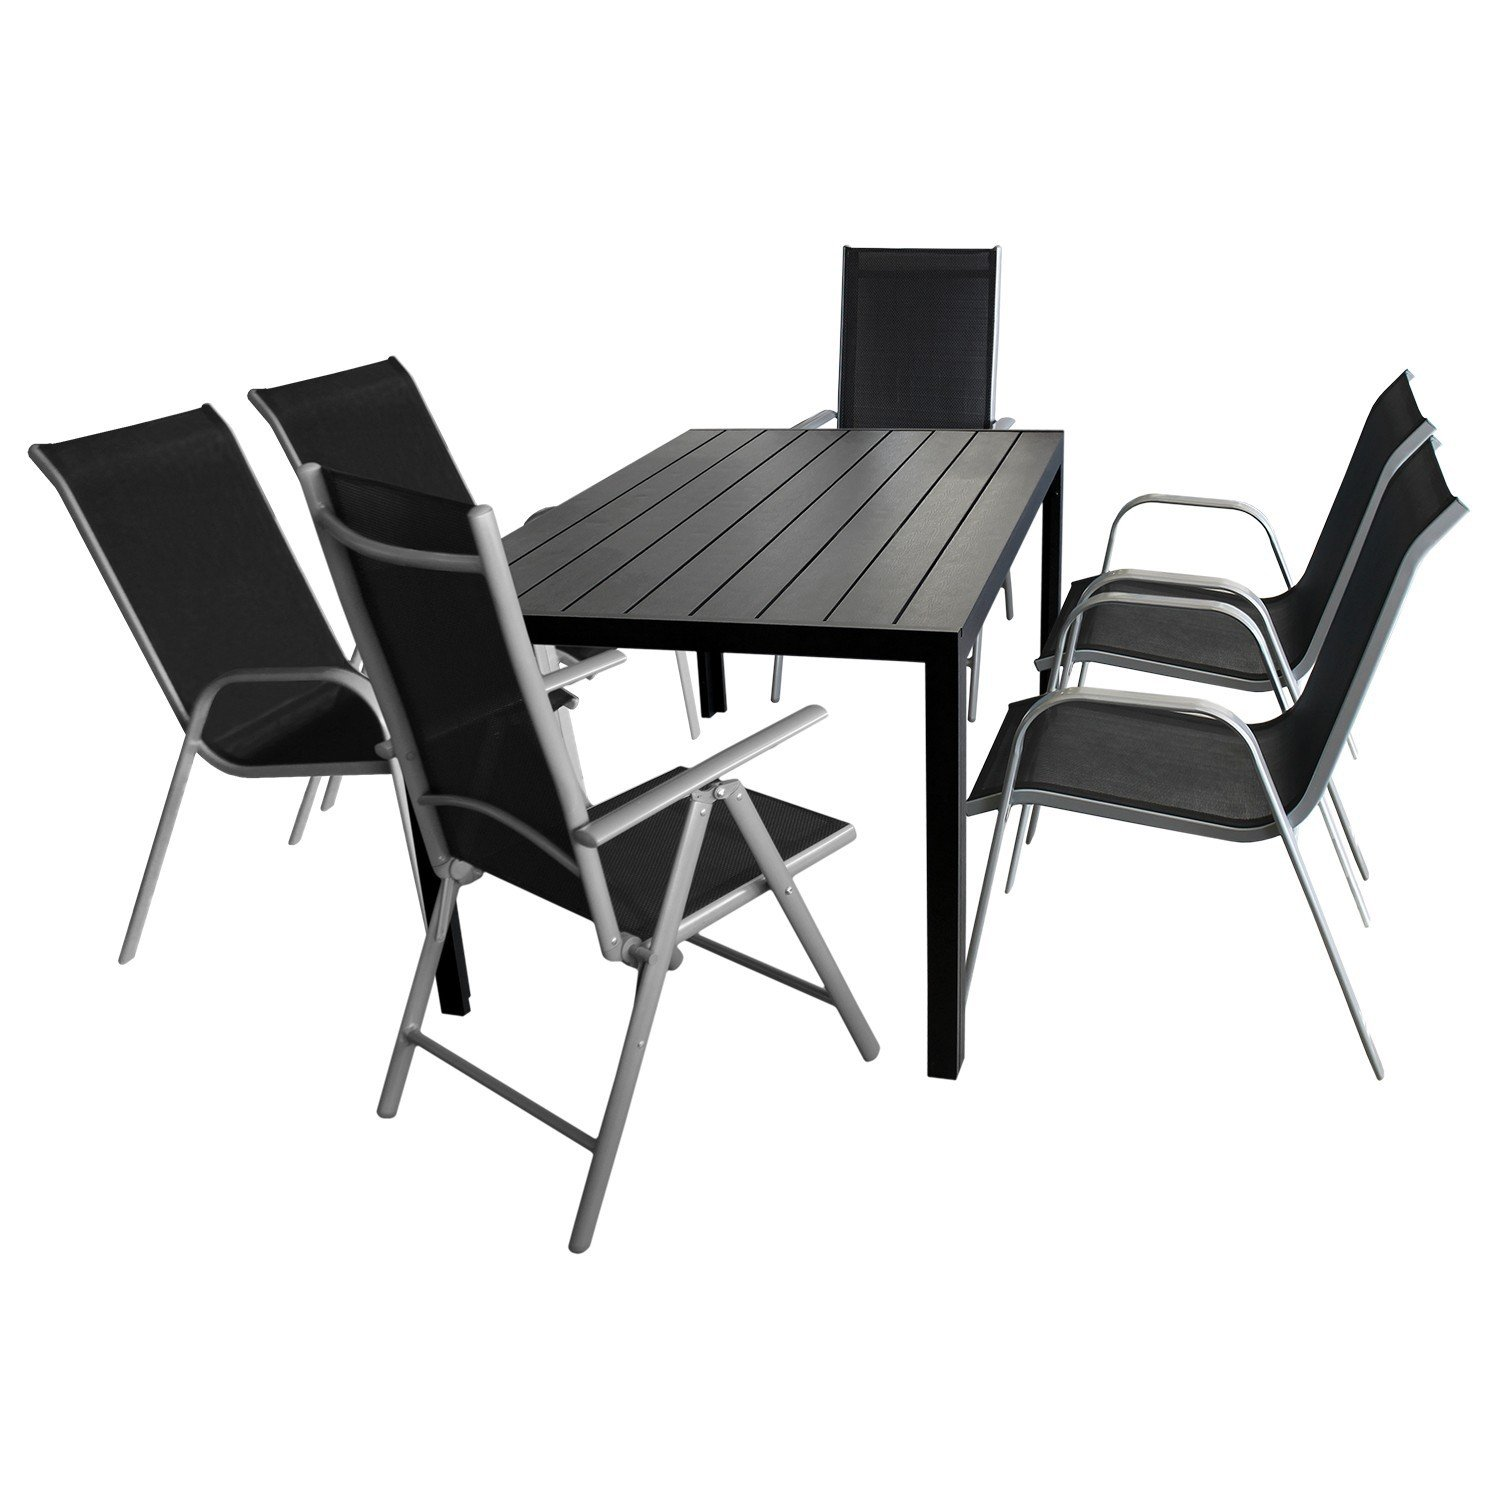 gartenm bel set 7 teilig sitzgarnitur sitzgruppe gartengarnitur terrassenm bel gartentisch. Black Bedroom Furniture Sets. Home Design Ideas